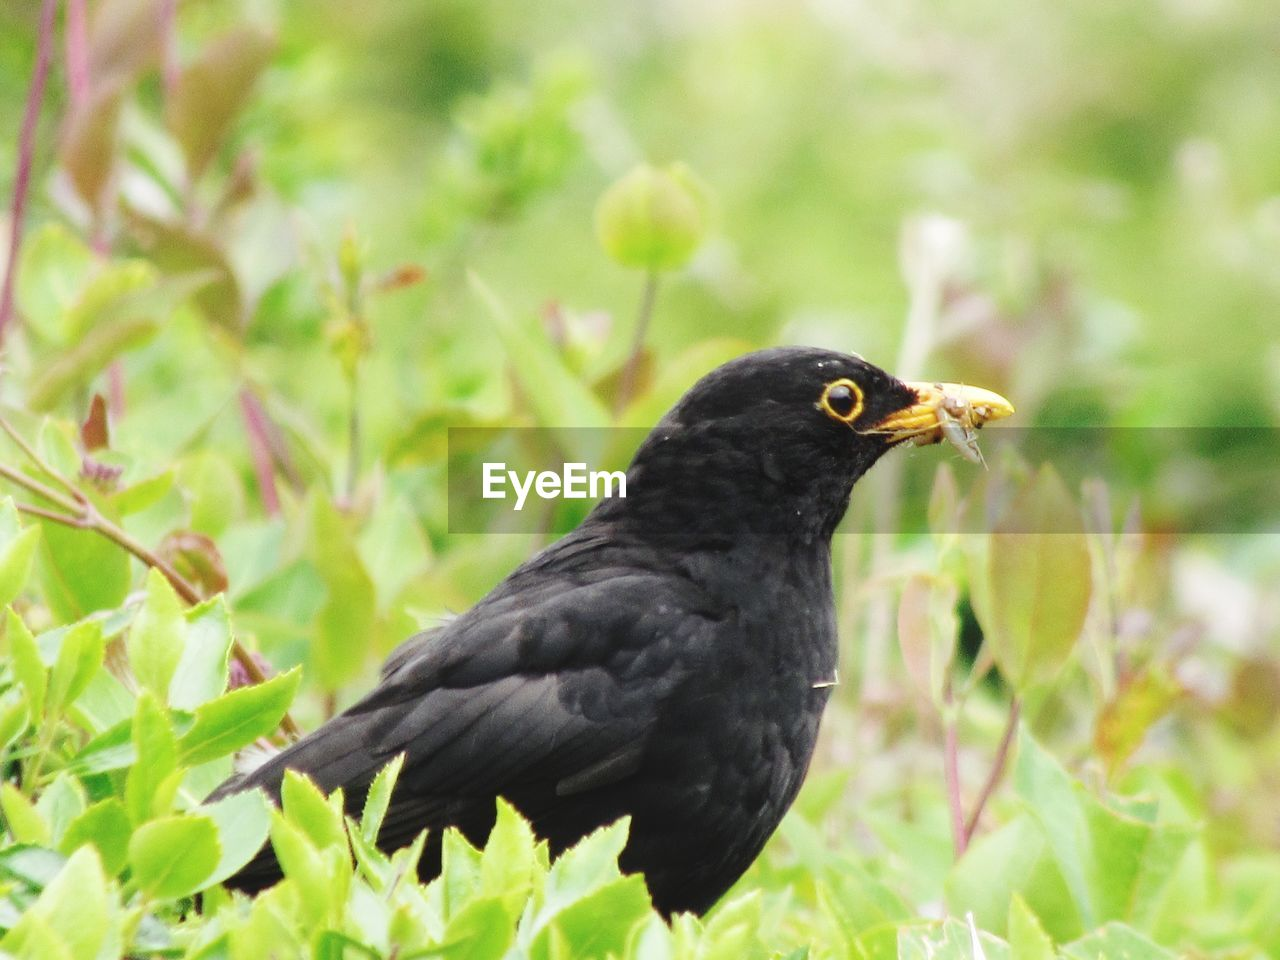 animal, animal themes, one animal, animals in the wild, animal wildlife, bird, vertebrate, black color, blackbird, plant, day, no people, nature, focus on foreground, close-up, outdoors, perching, land, plant part, side view